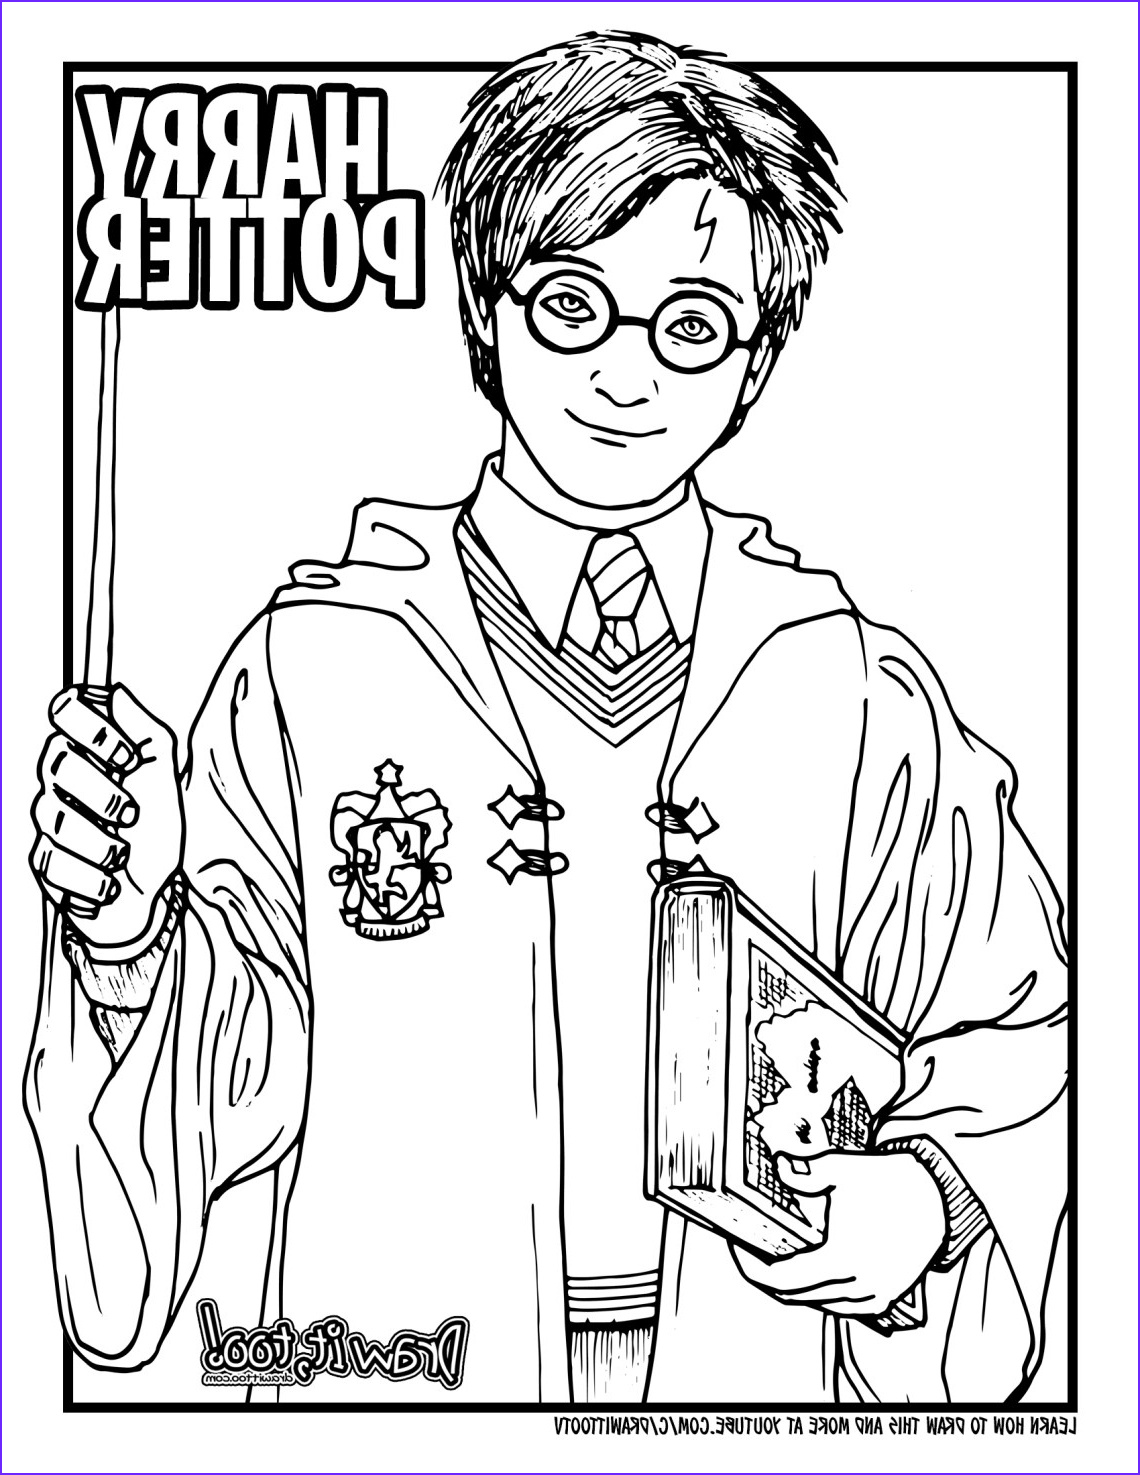 Harry Potter Coloring Book Page Cool Photography How to Draw Harry Potter Harry Potter Movie Series